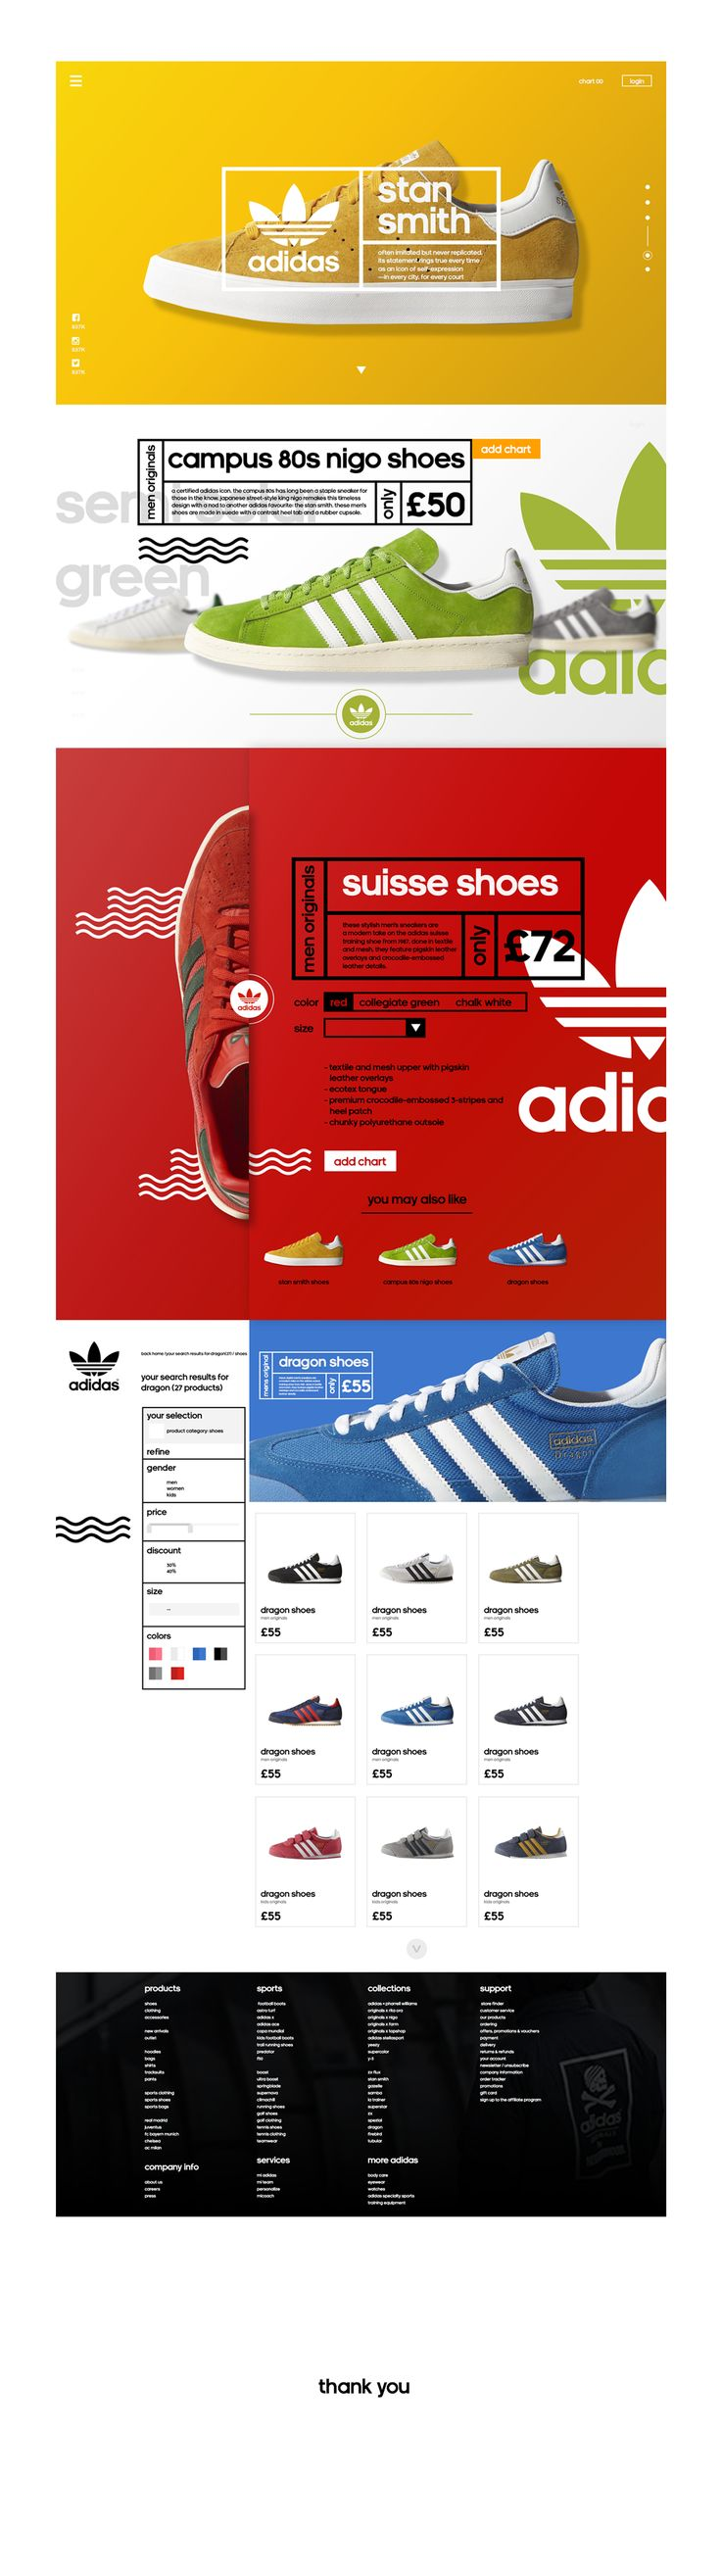 Adidas - Redesign Concept This project is non-commercial purposes. All photos and videos used in the project belong to Adidas. I made just for fun and study :)check me on https://dribbble.com/nugrahajatiutama to see another shot